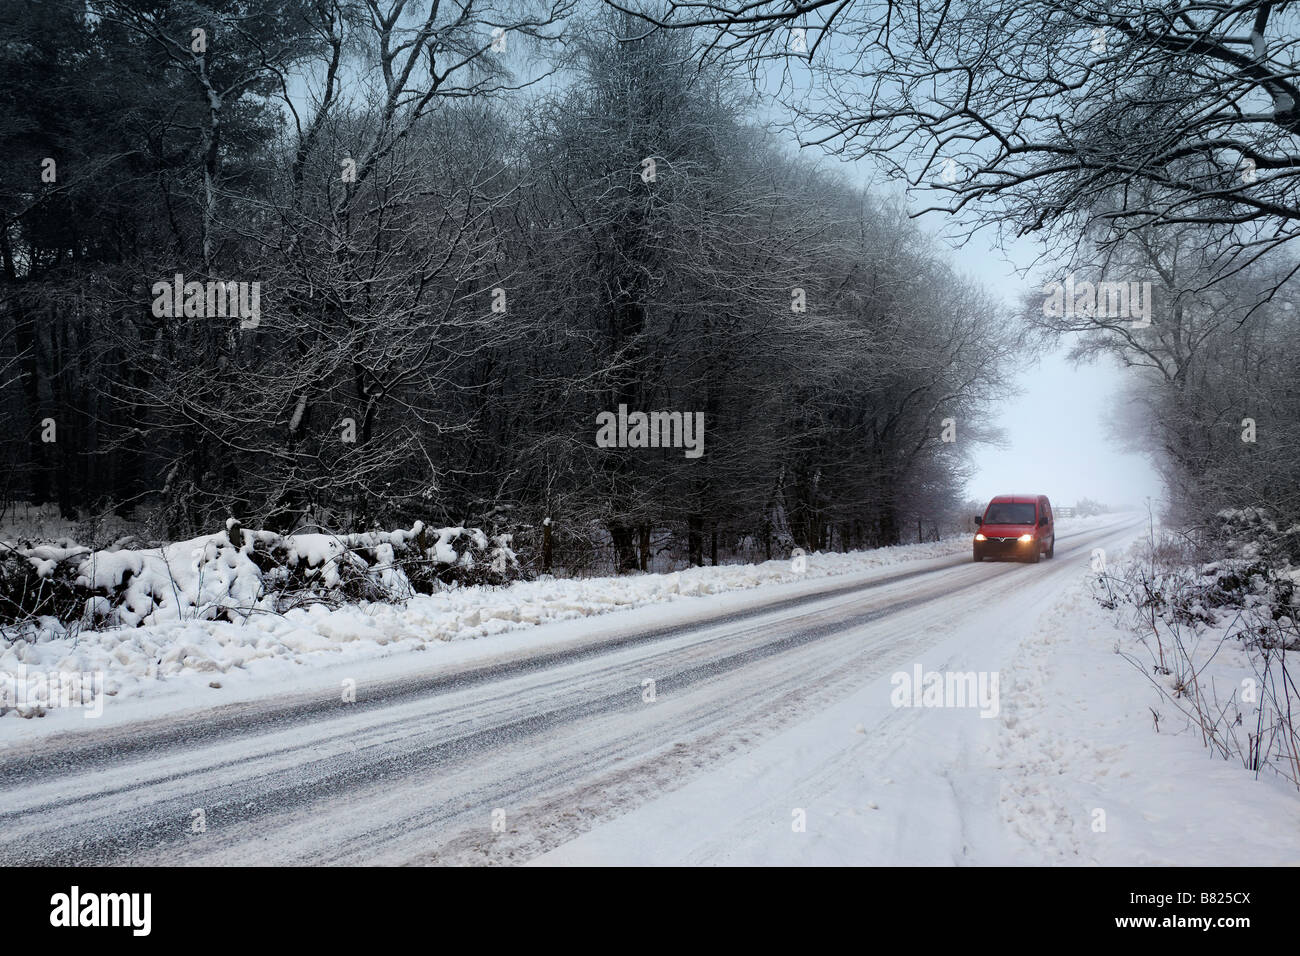 A Post van on a snow covered country lane in North Yorkshire in the United Kingdom - Stock Image